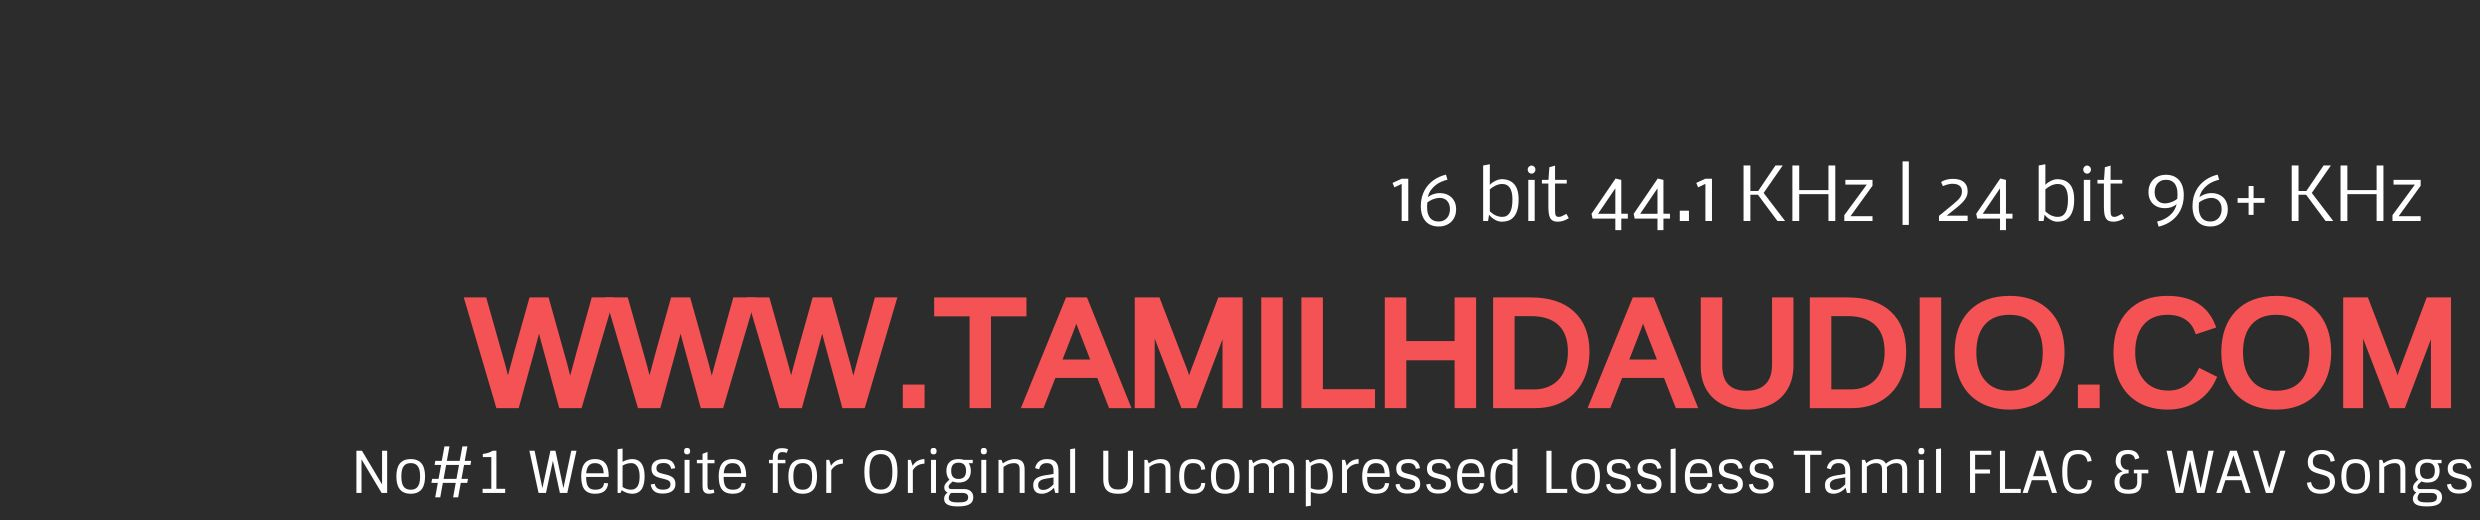 Tamil Flac Mp3 Songs Free Download Tamil Audio song in FLAC format